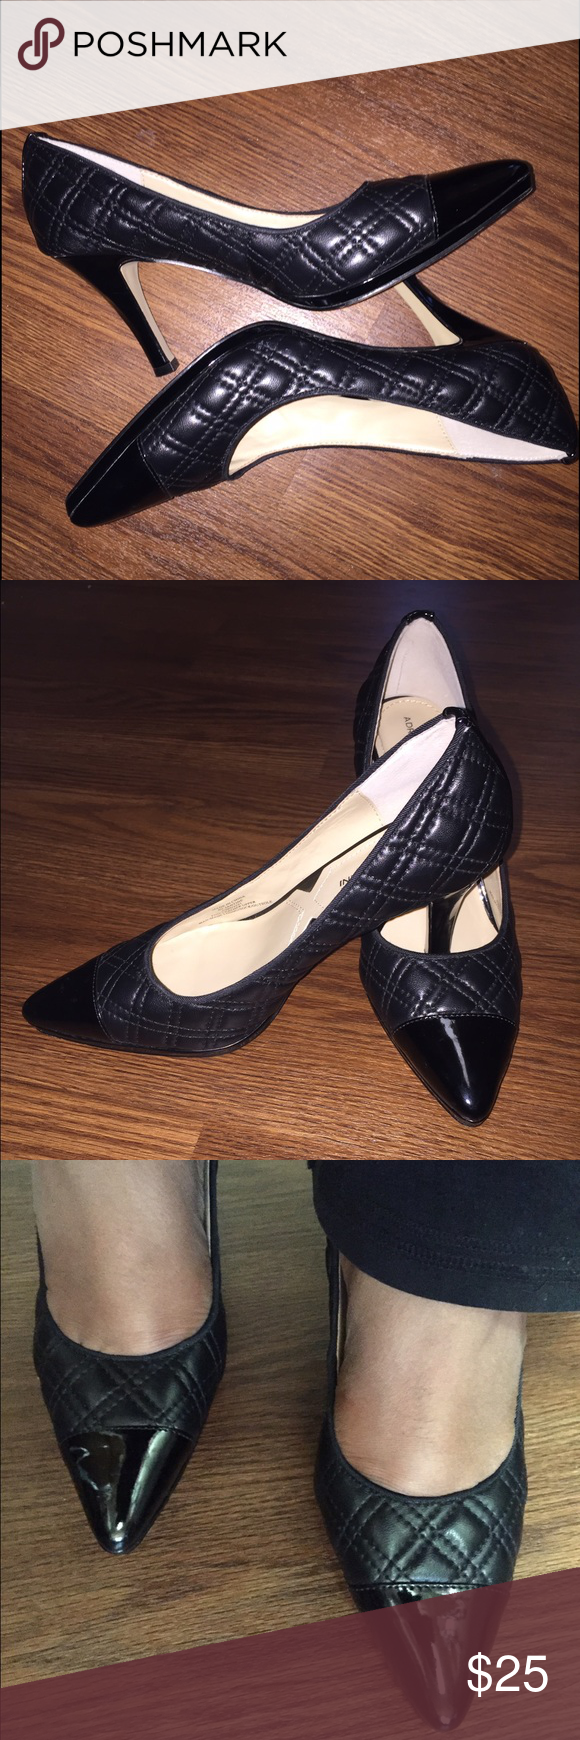 Spotted while shopping on Poshmark: Adrienne Vittadini Jantine quilted pumps! #poshmark #fashion #shopping #style #Adrienne Vittadini #Shoes